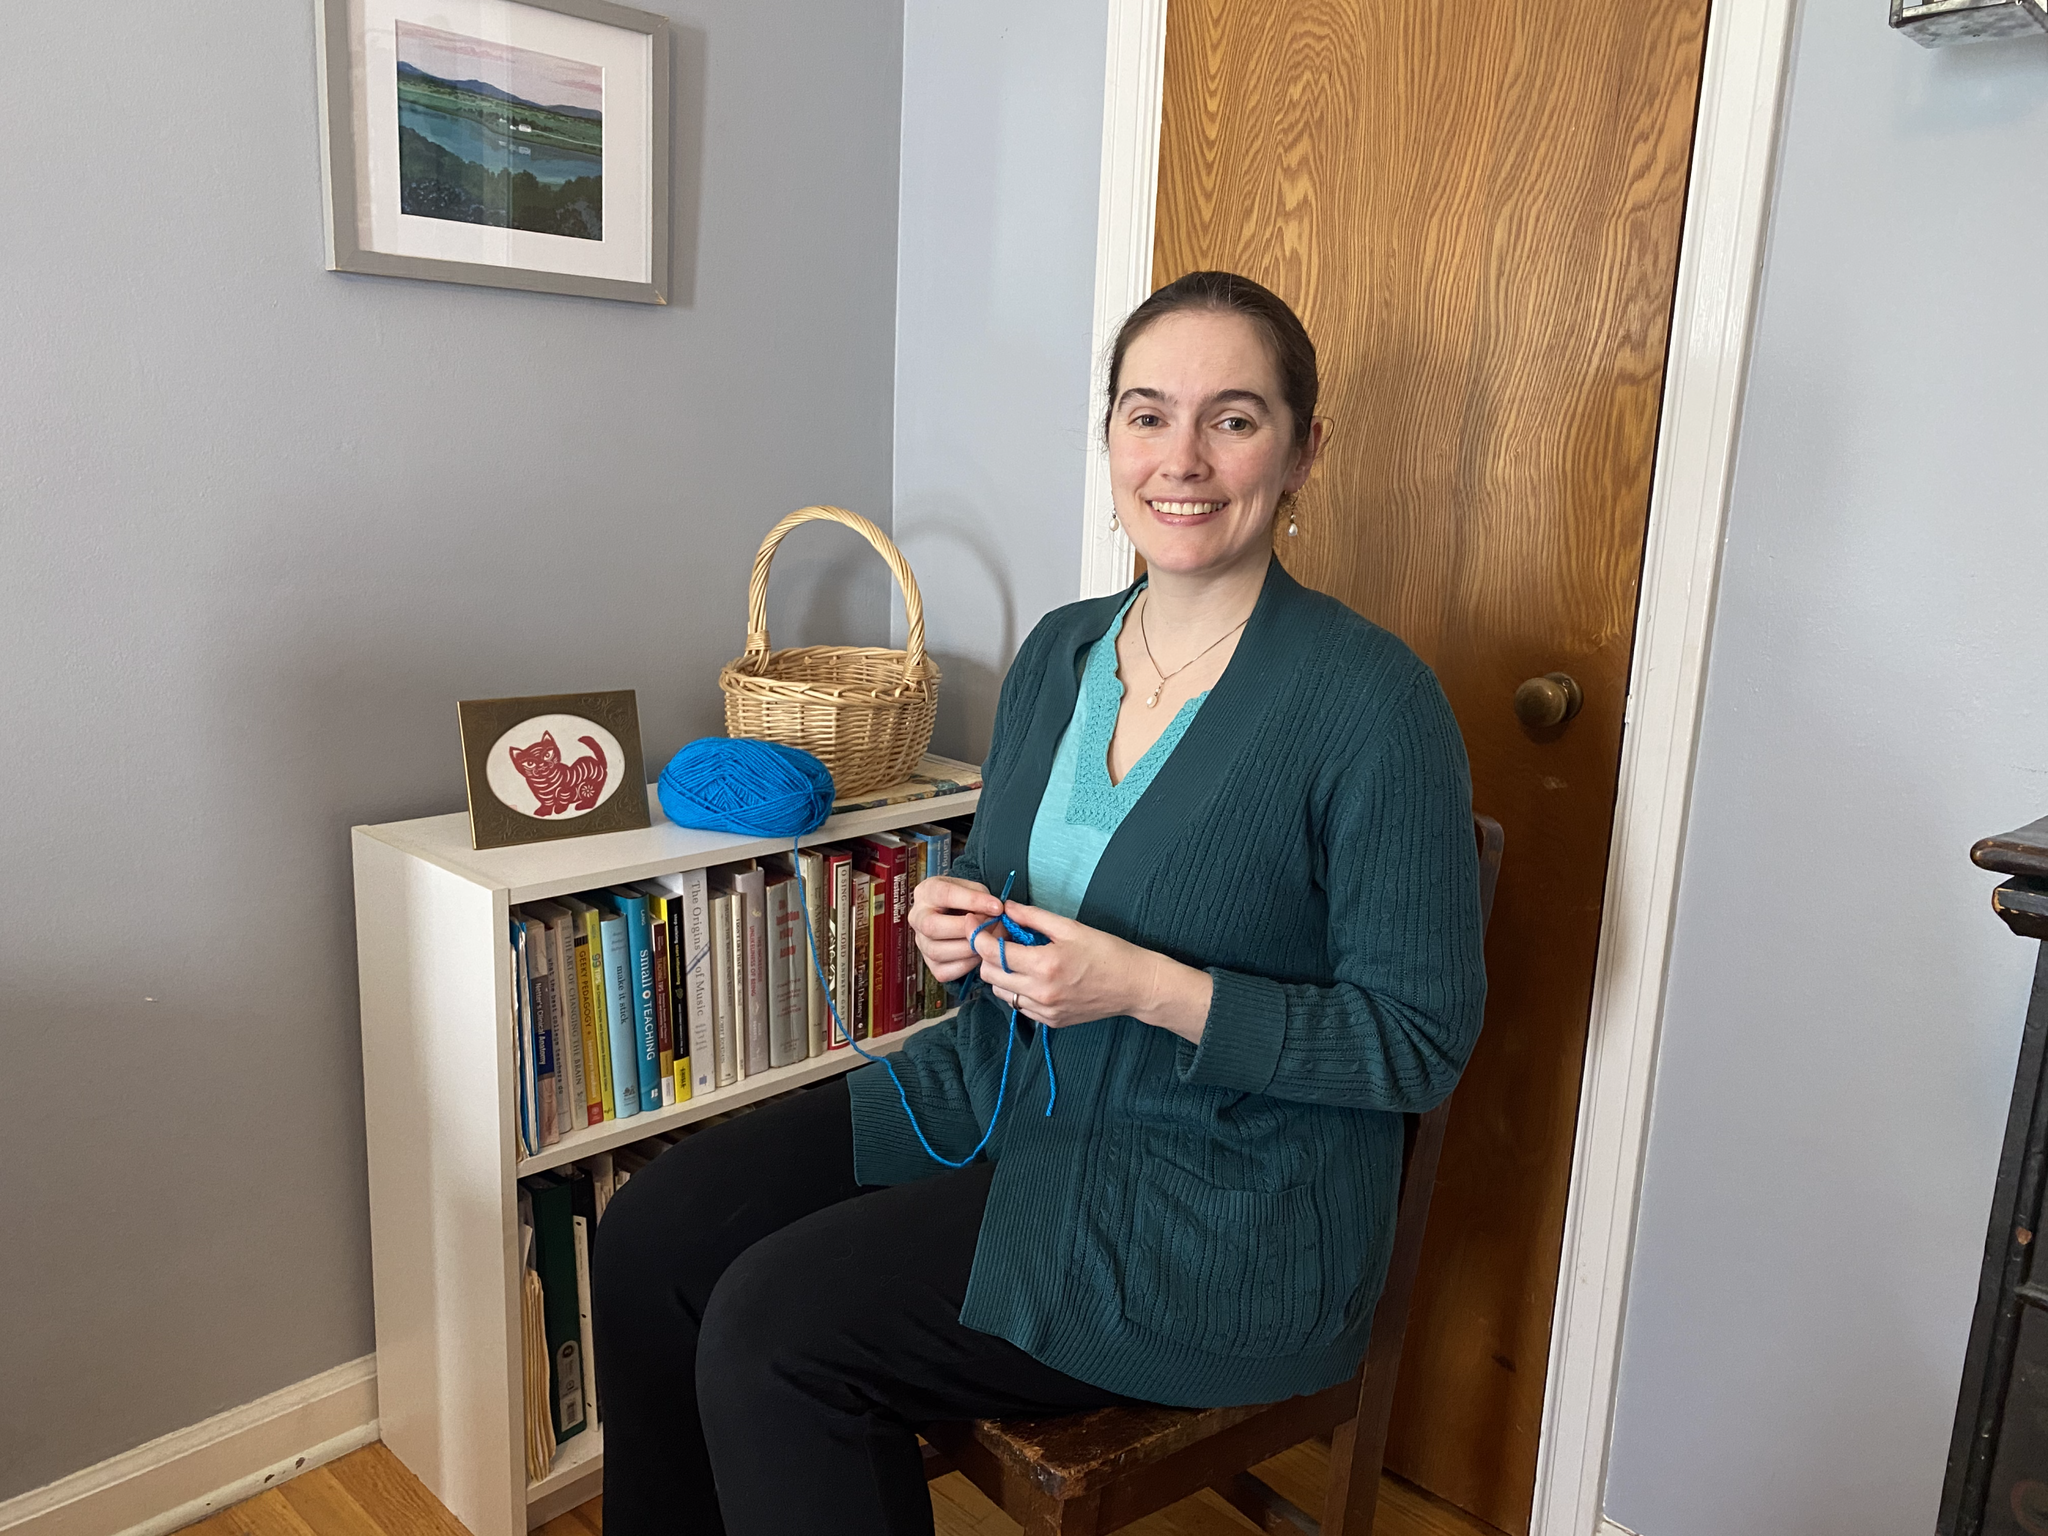 Sarah McConnell, Ph.D. is sitting next to a bookcase knitting. She is wearing a blue shirt and sweater and is smiling with her dark hair pulled back.